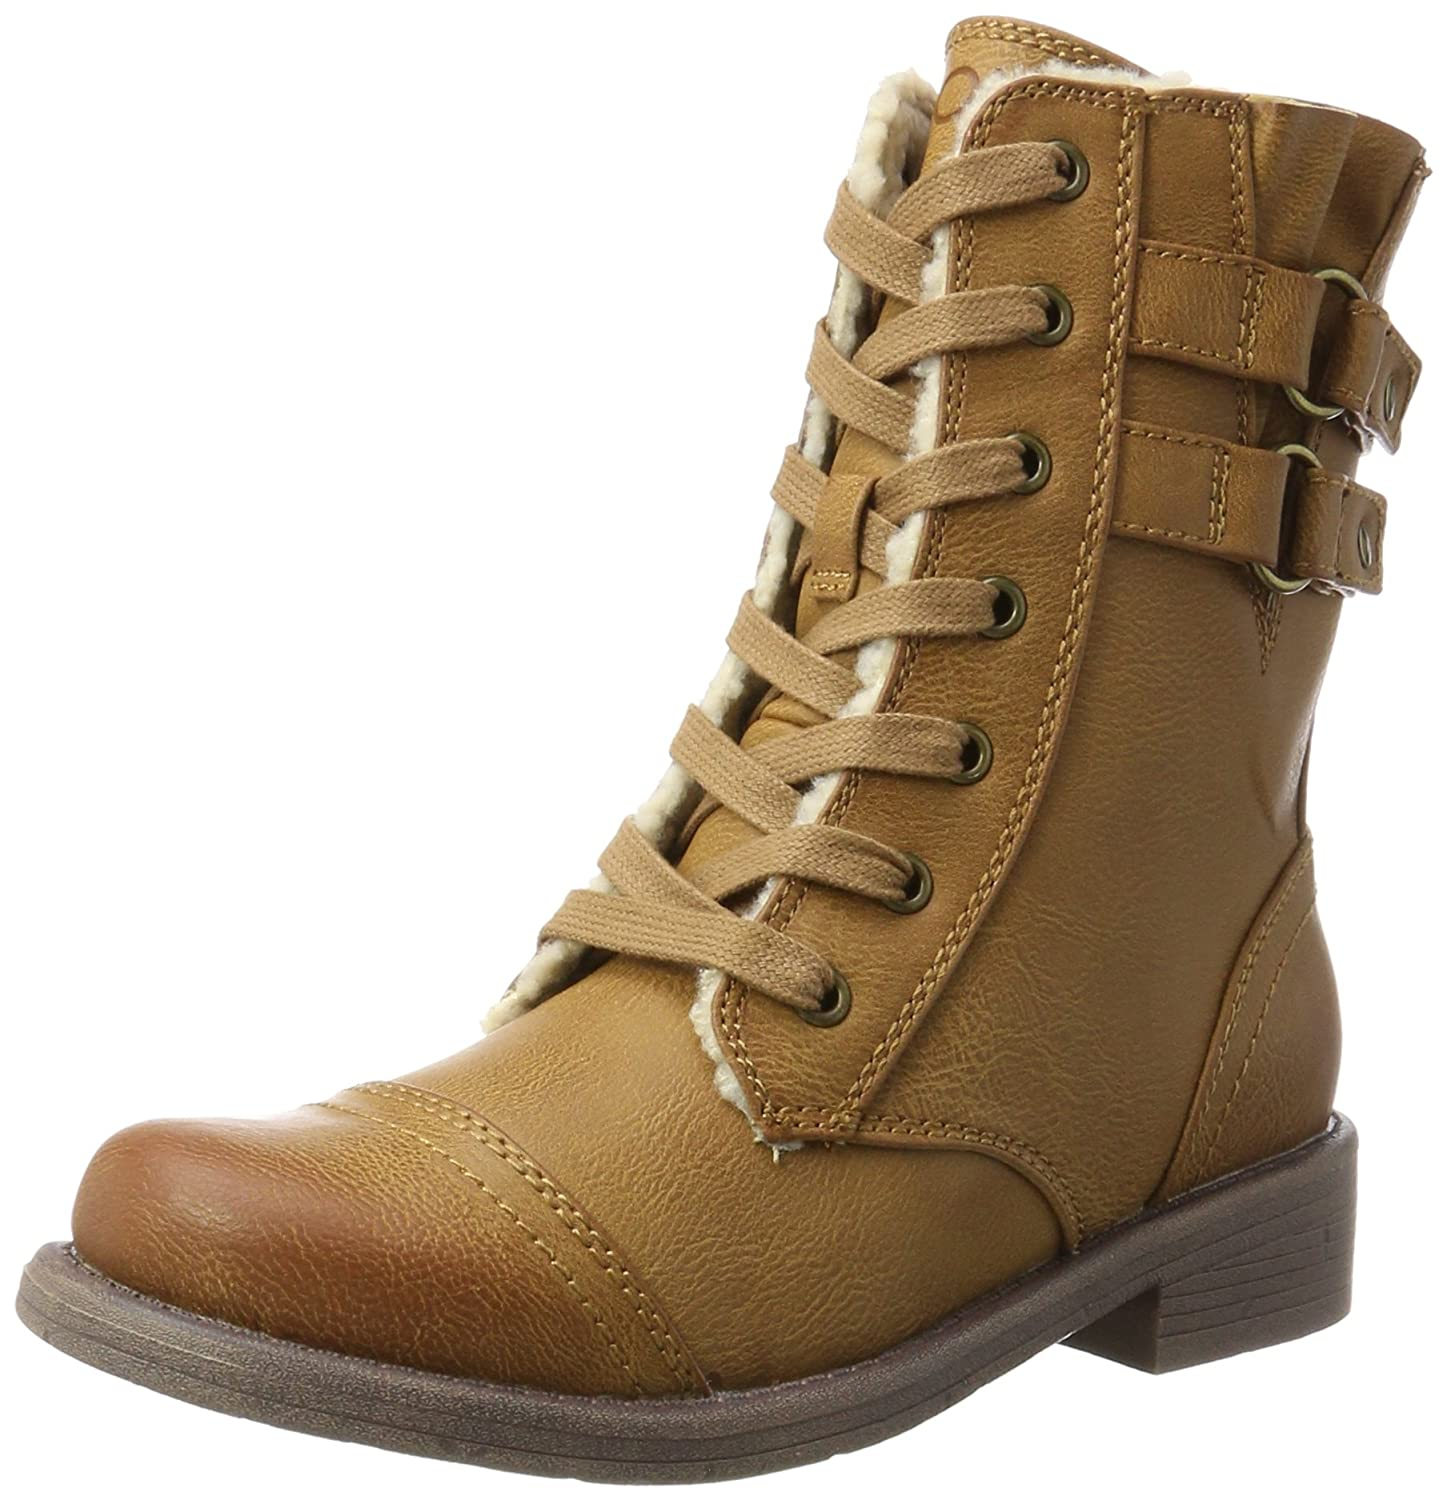 Roxy (Tan) Femme Dominguez, Dominguez, Bottes Femme Marron (Tan) 7a2a7c7 - reprogrammed.space